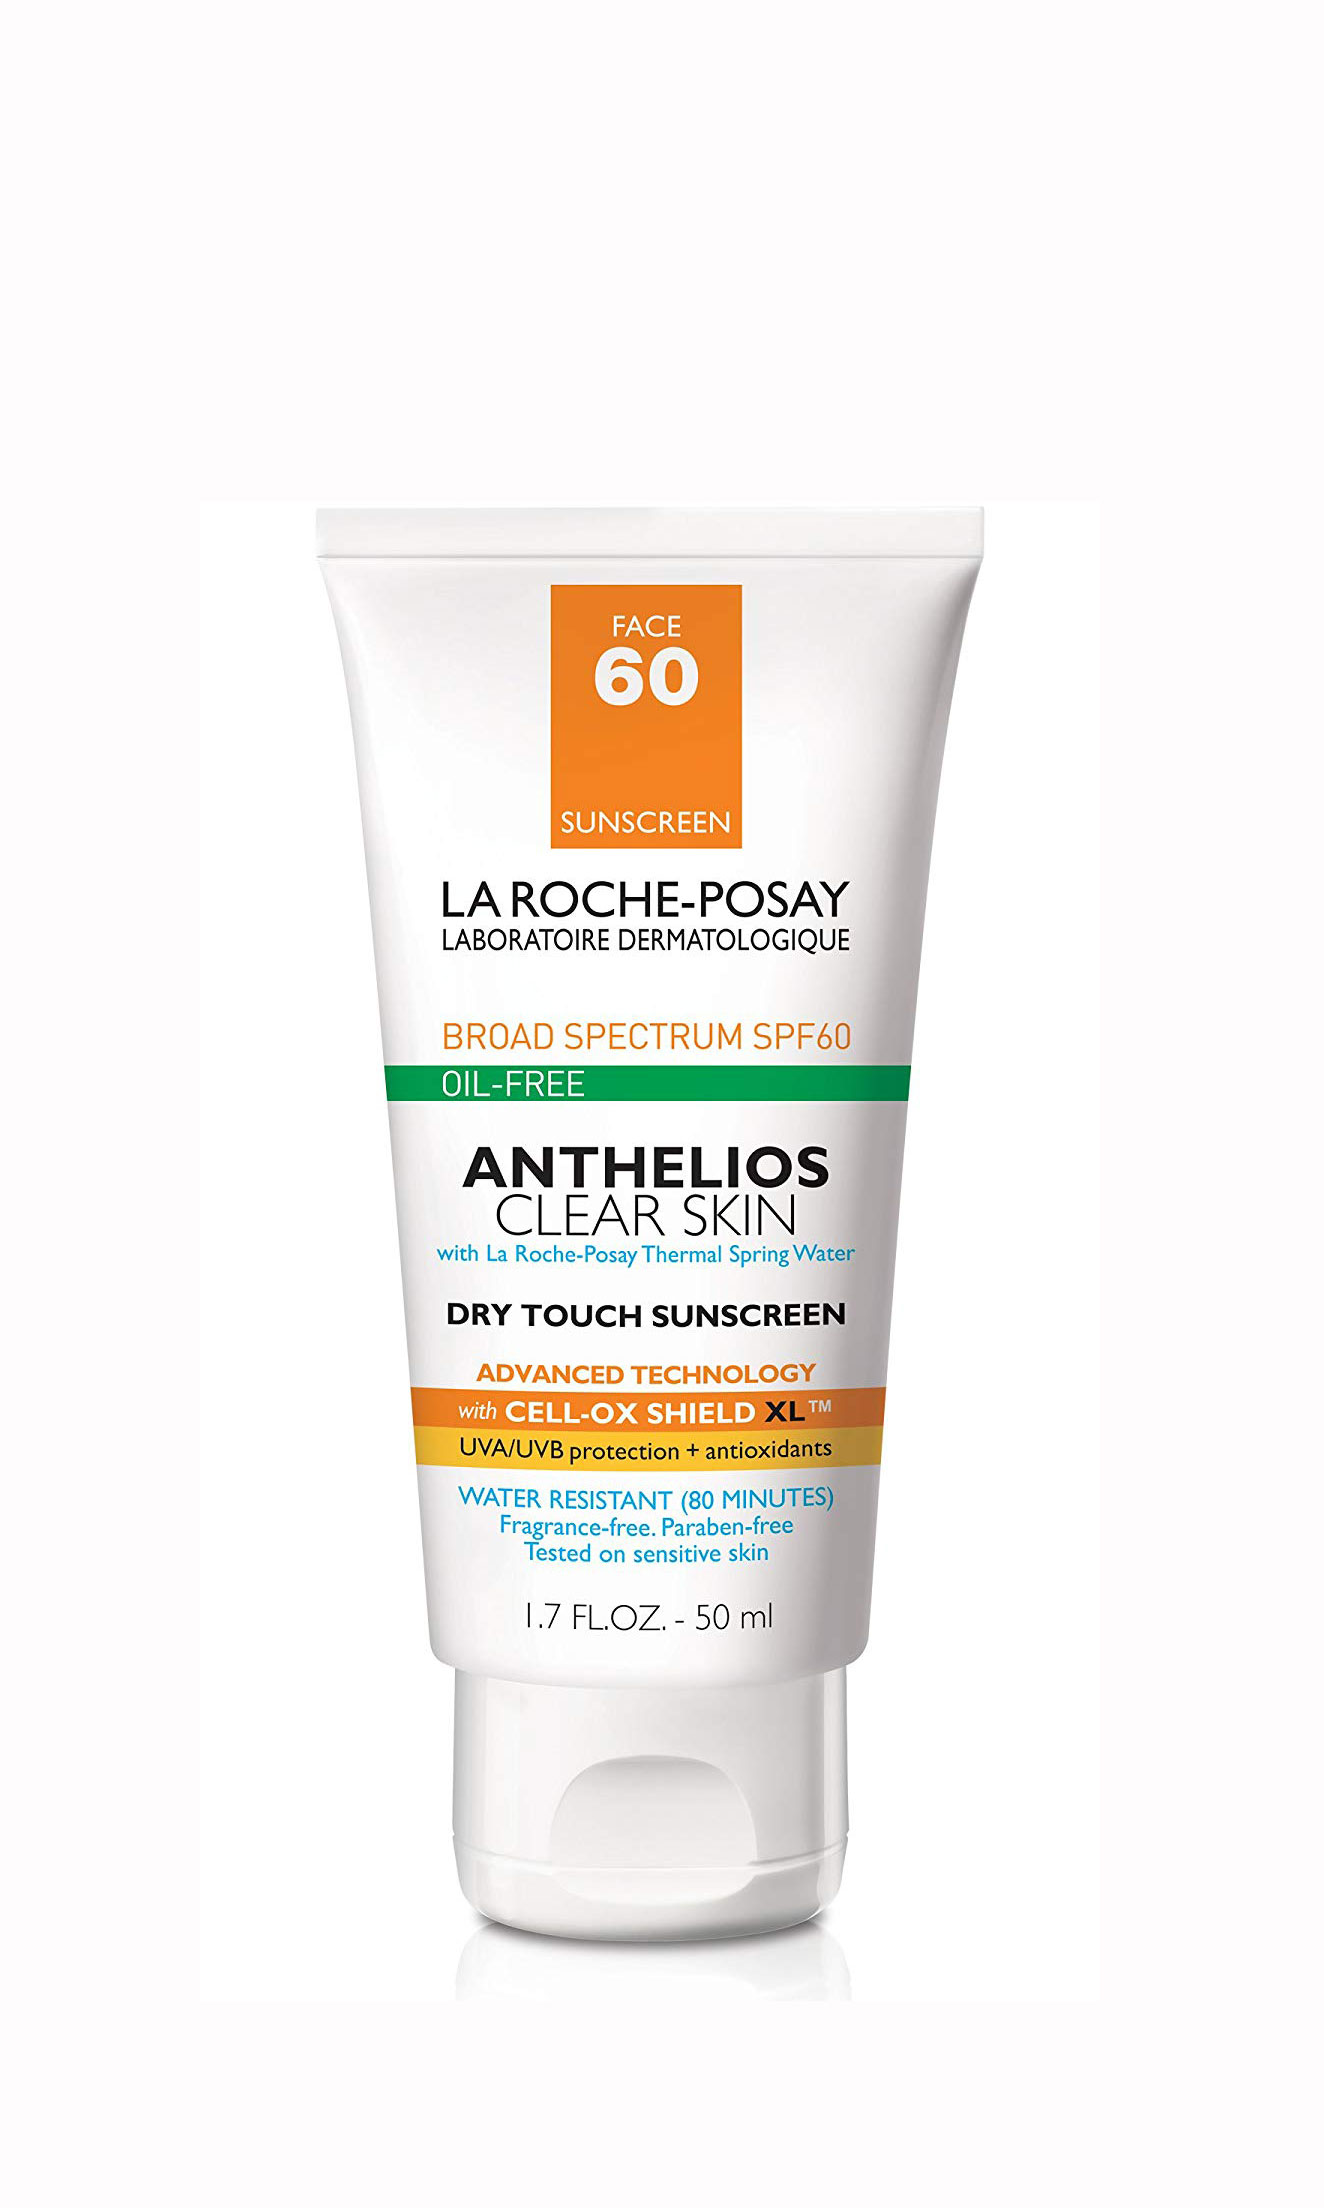 My Favorite Matte Sunscreens For Oily Skin | STYLECASTER